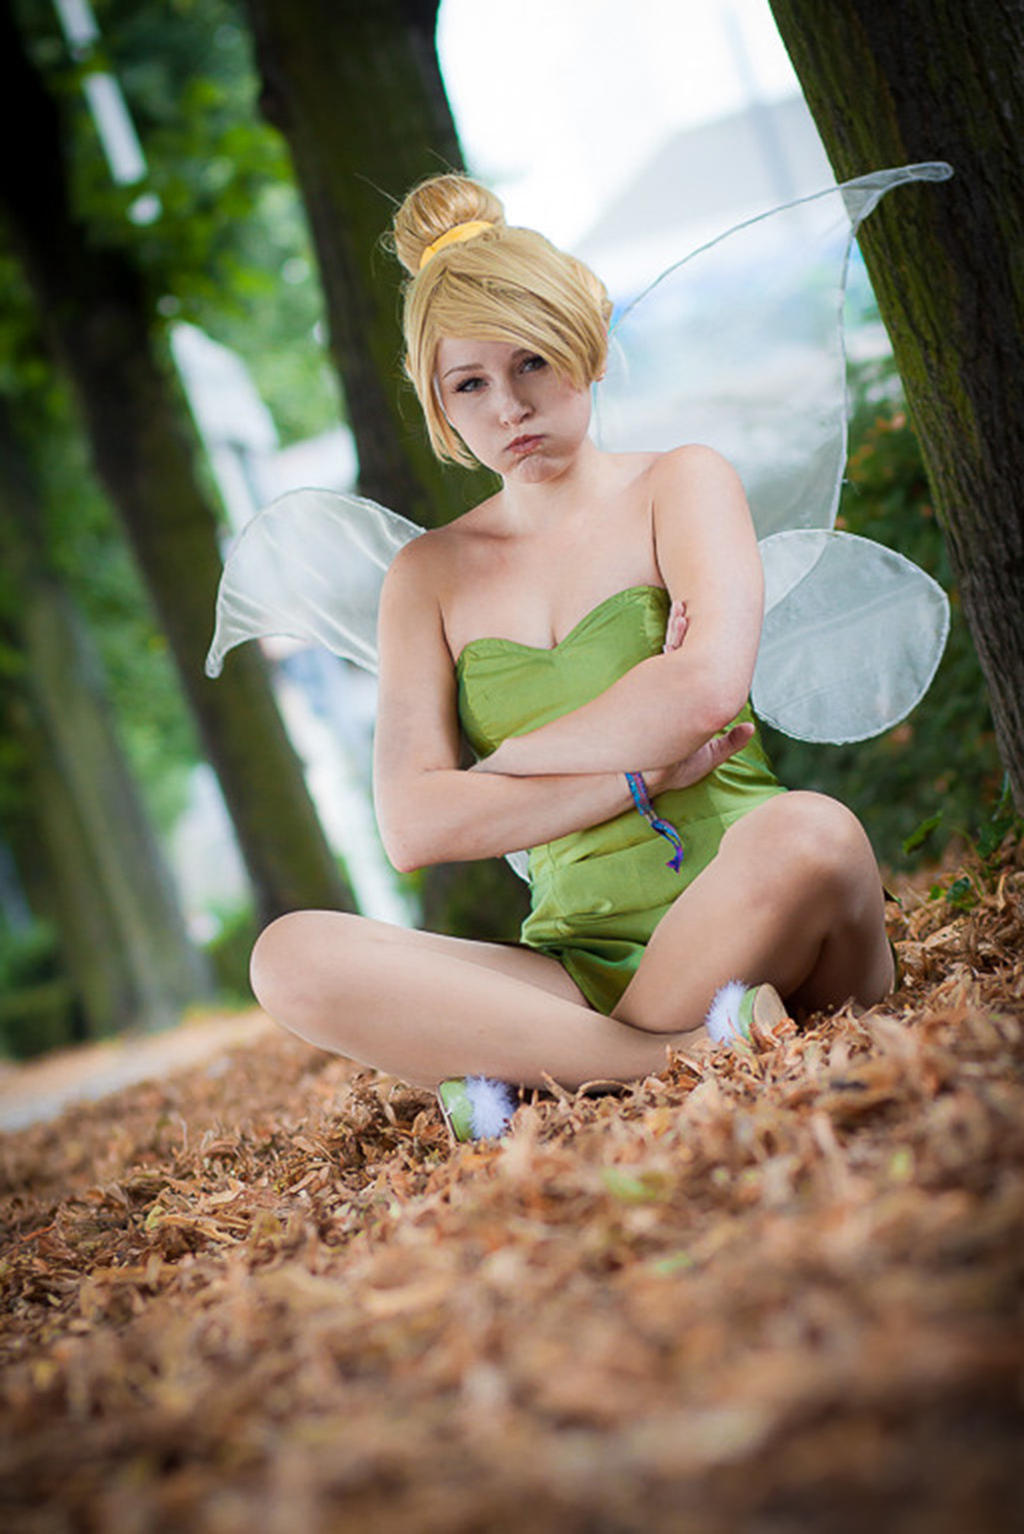 Tinker bell desnuda sex picture